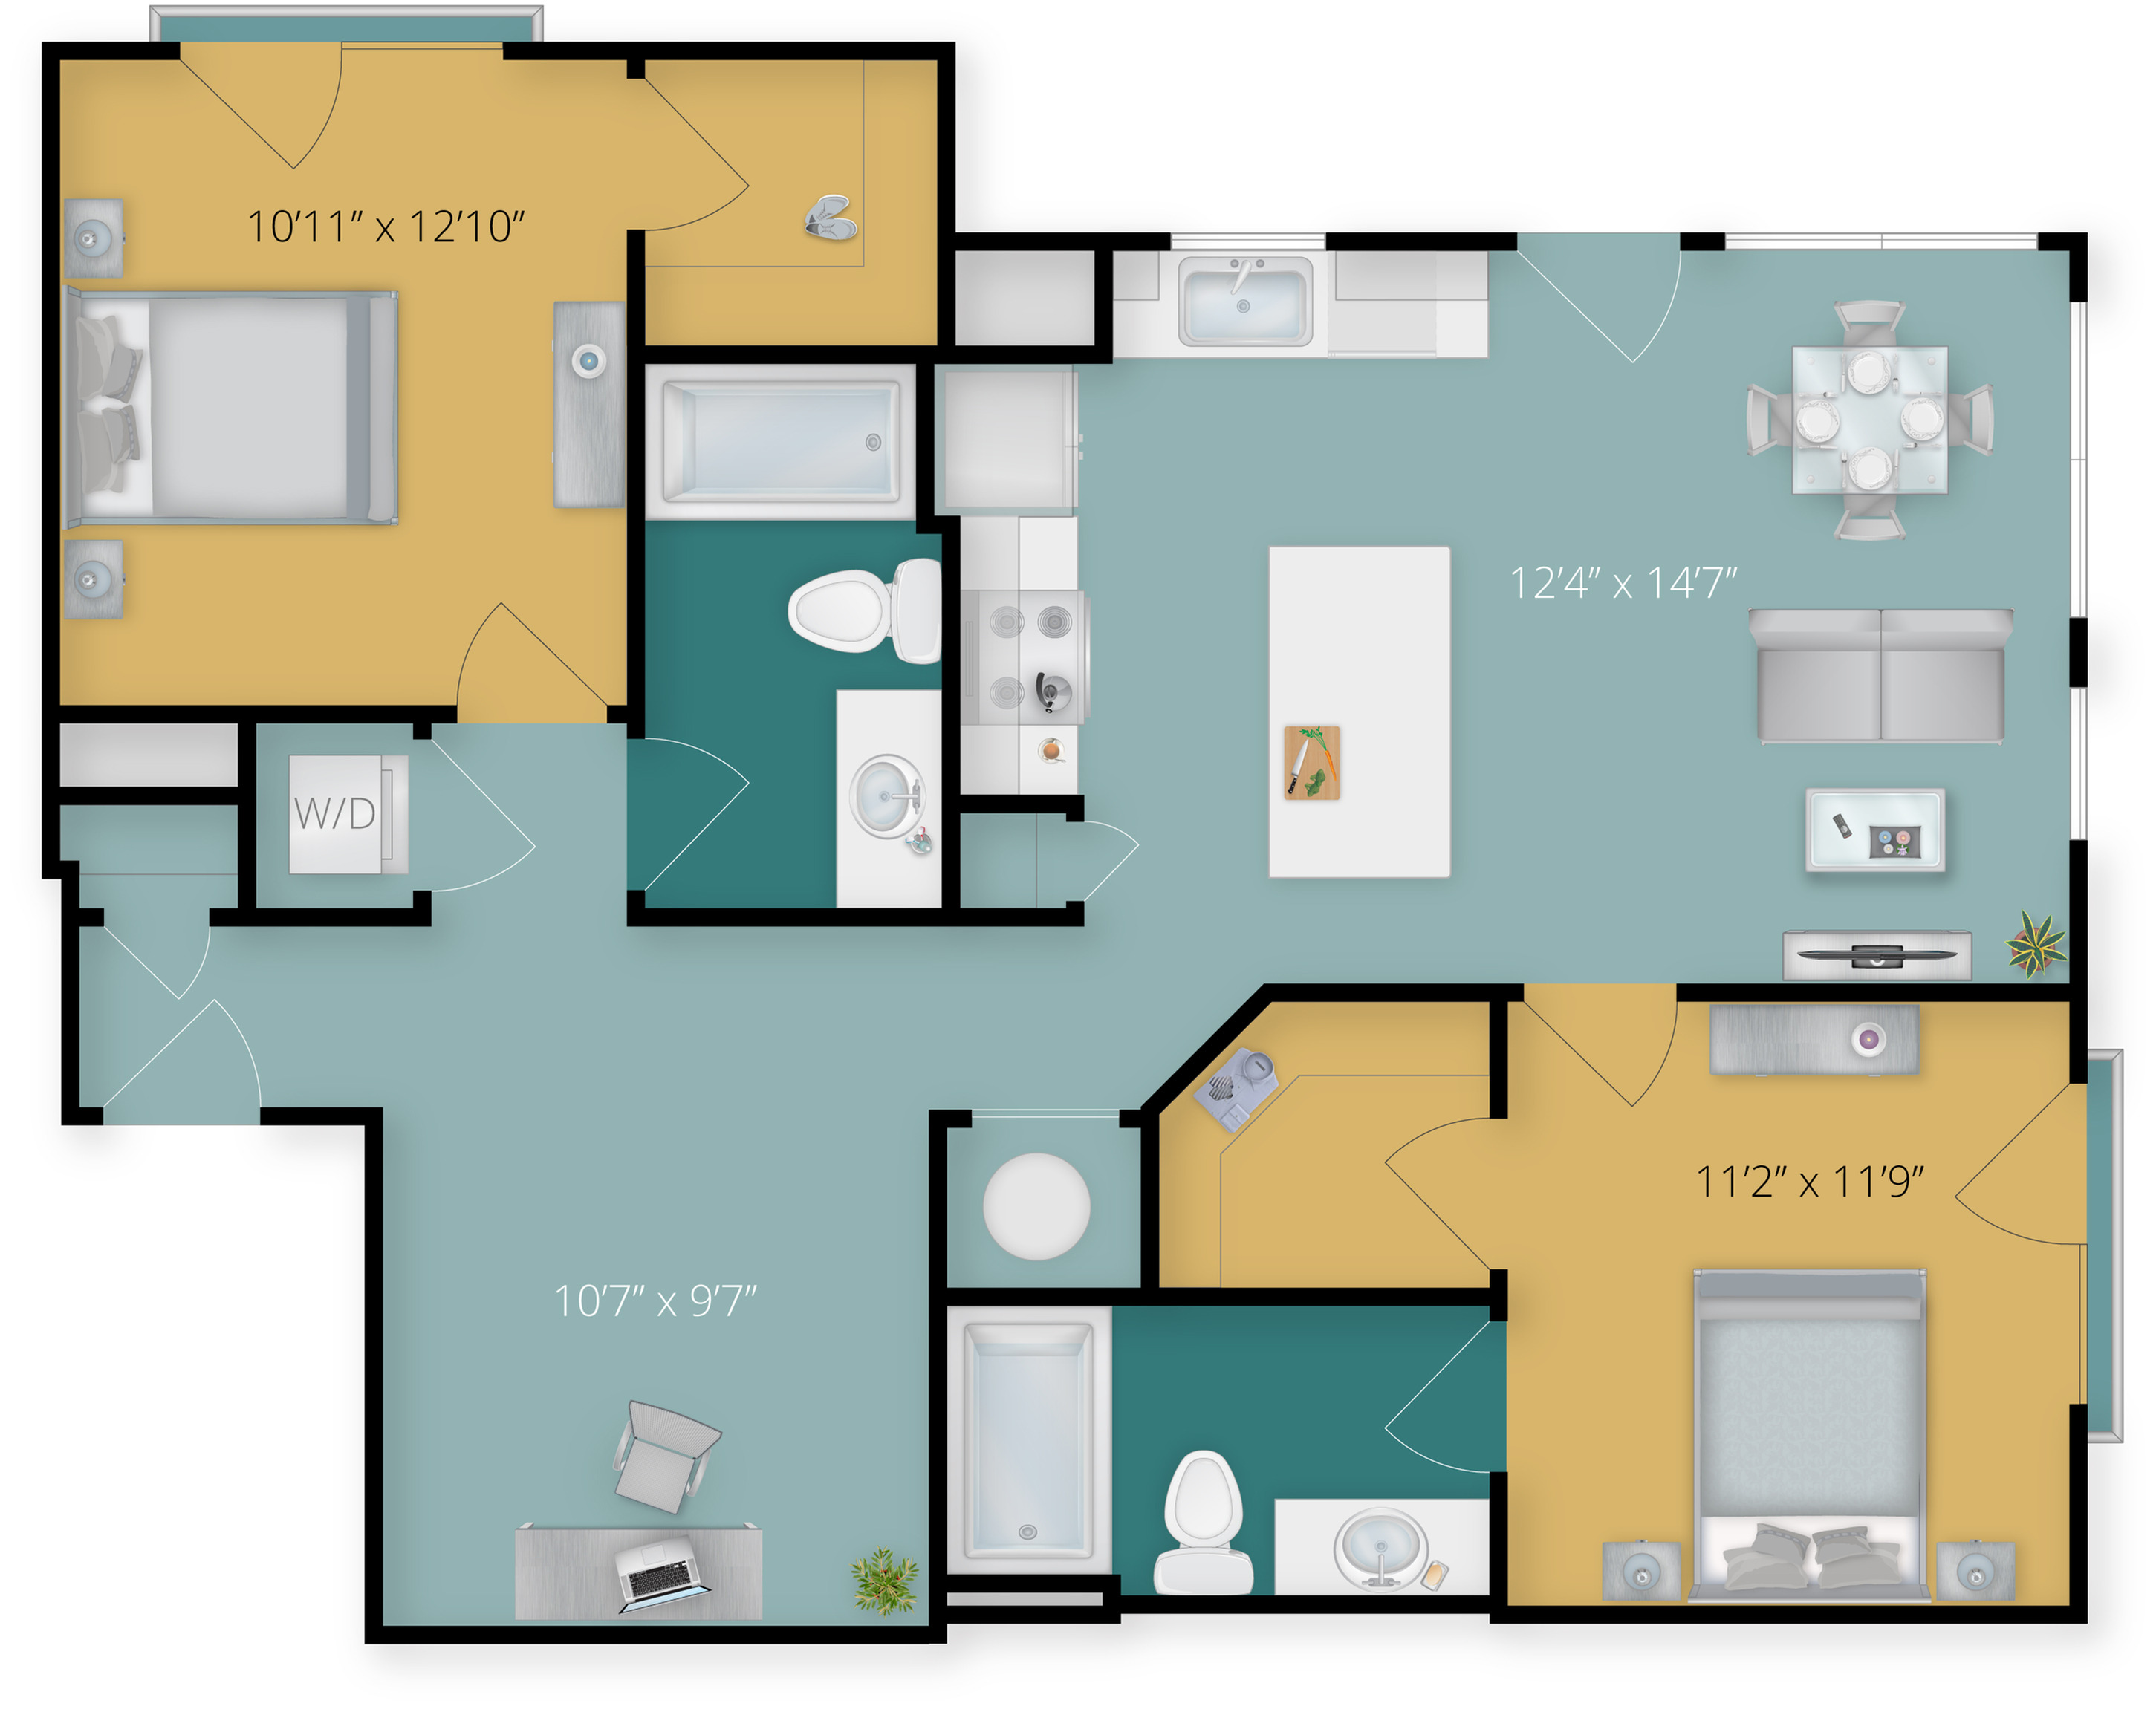 Floor Plan 3 | Luxury Apartments In Towson MD | Flats at 703